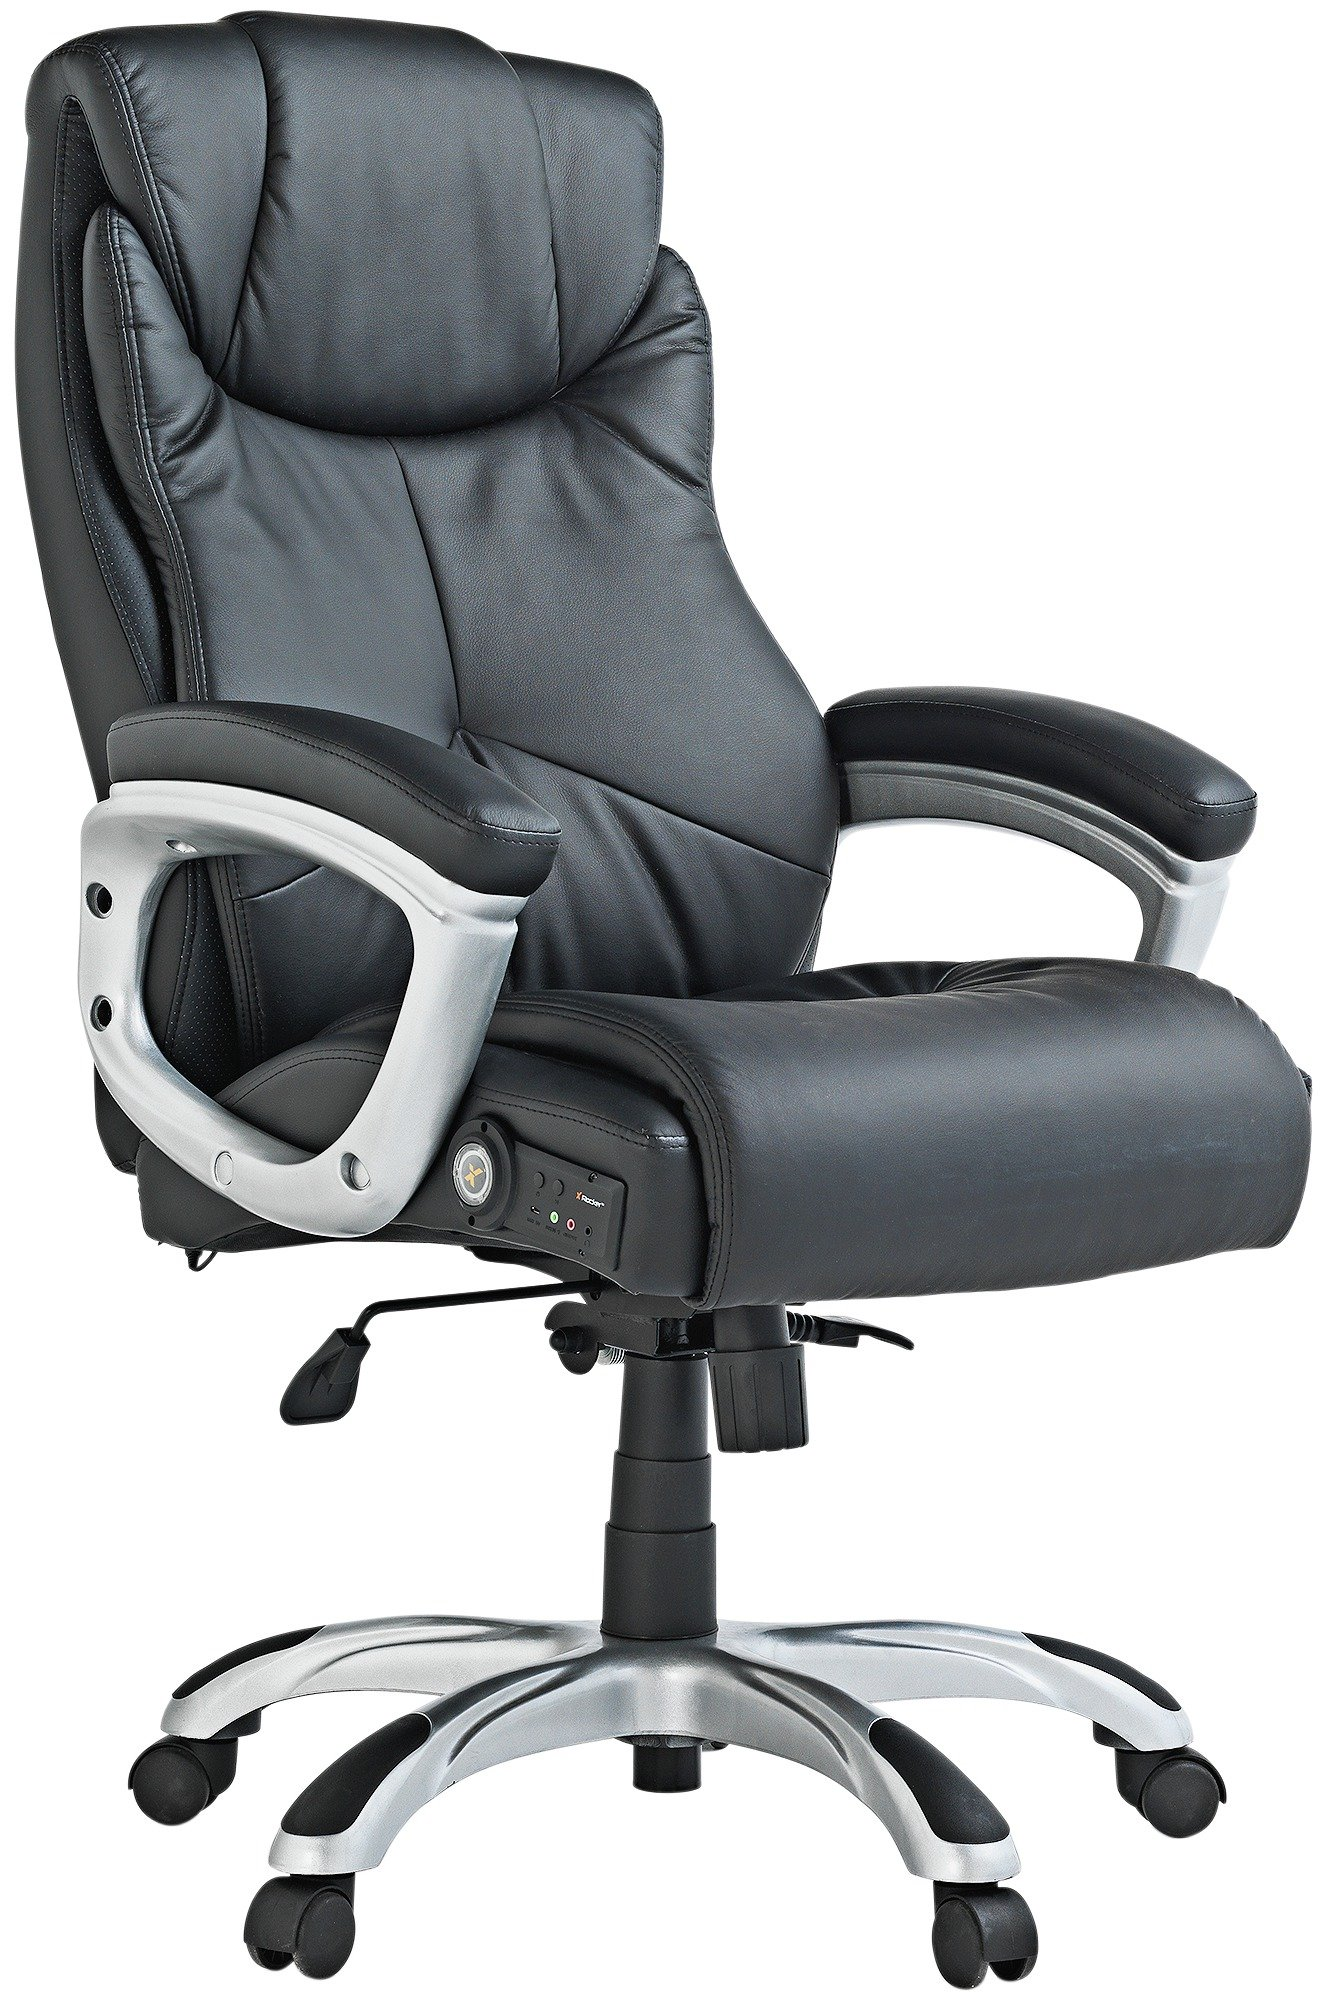 Game Chair Rocker Rocker Wireless Gaming Chair Find It For Less